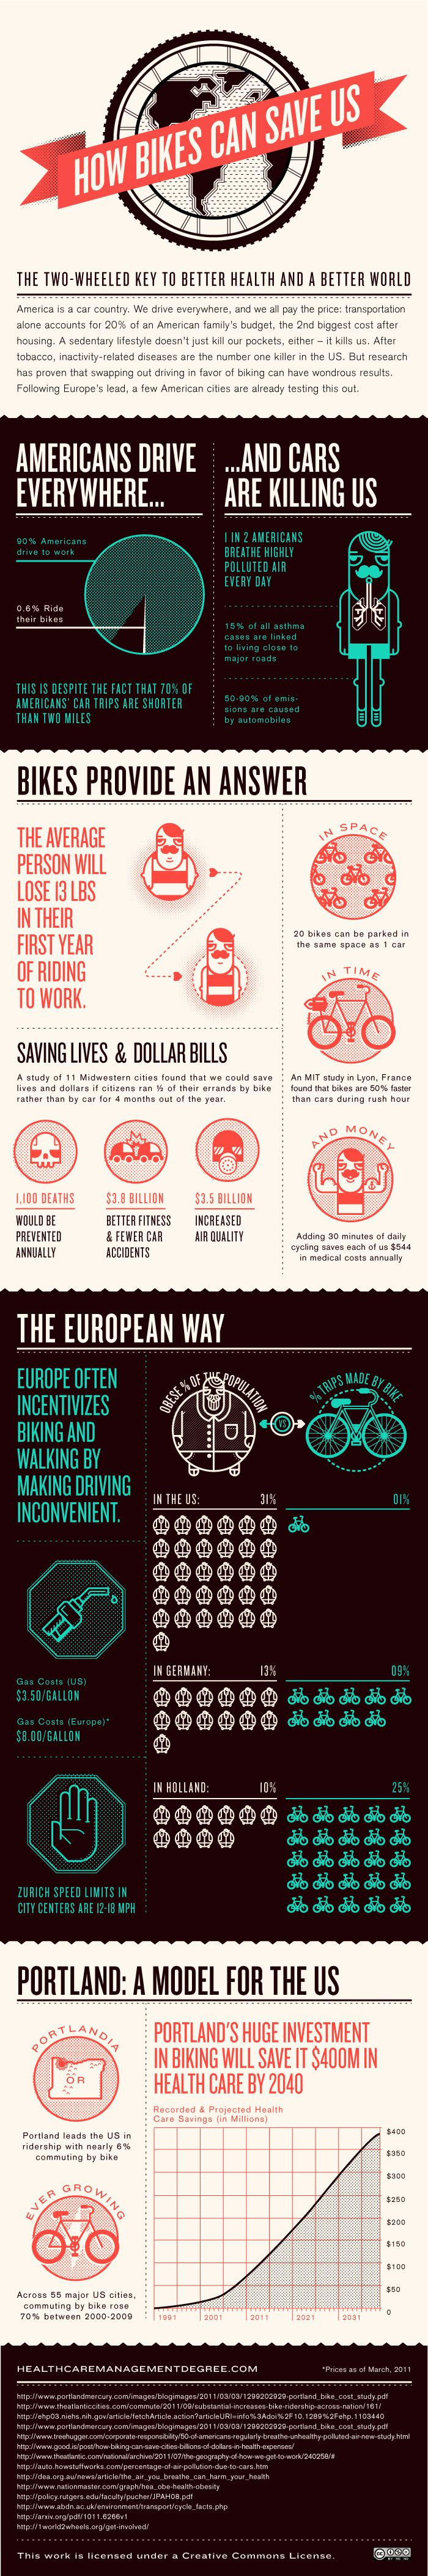 One of the best Biking And Health-related infographics we've seen in a while!